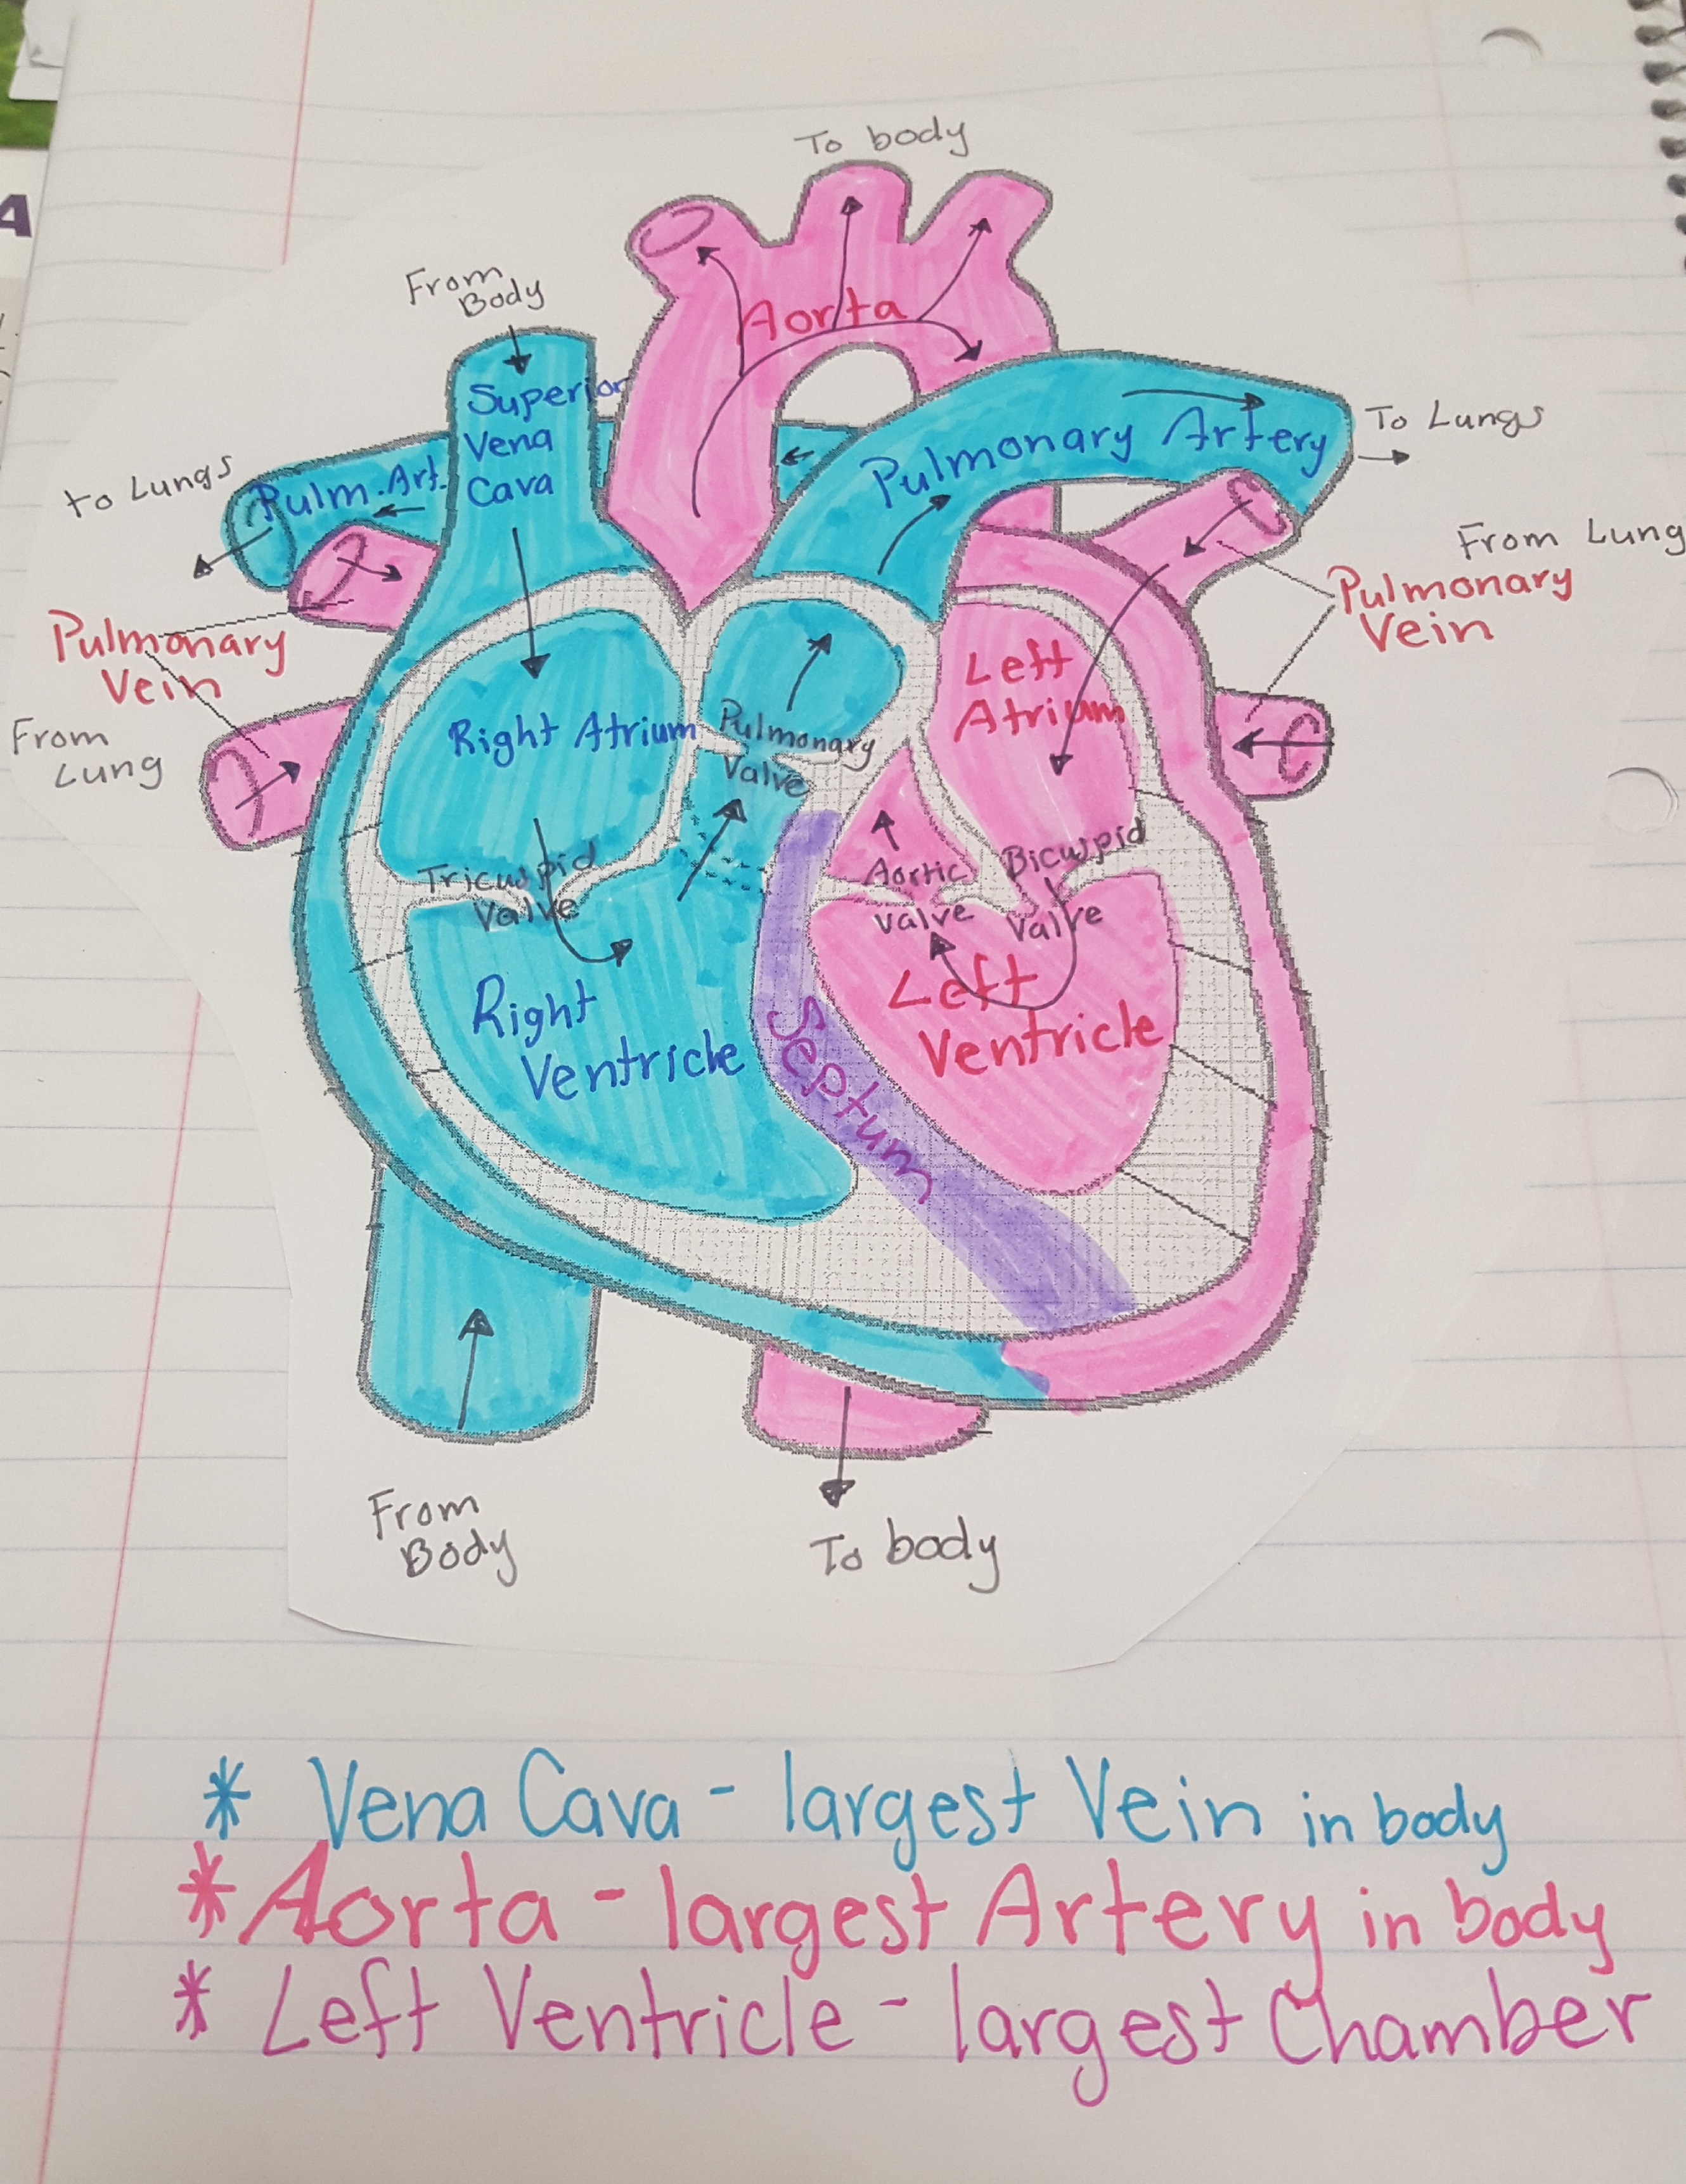 heart diagram quiz games of mouth with teeth numbers biology notes and helpful documents